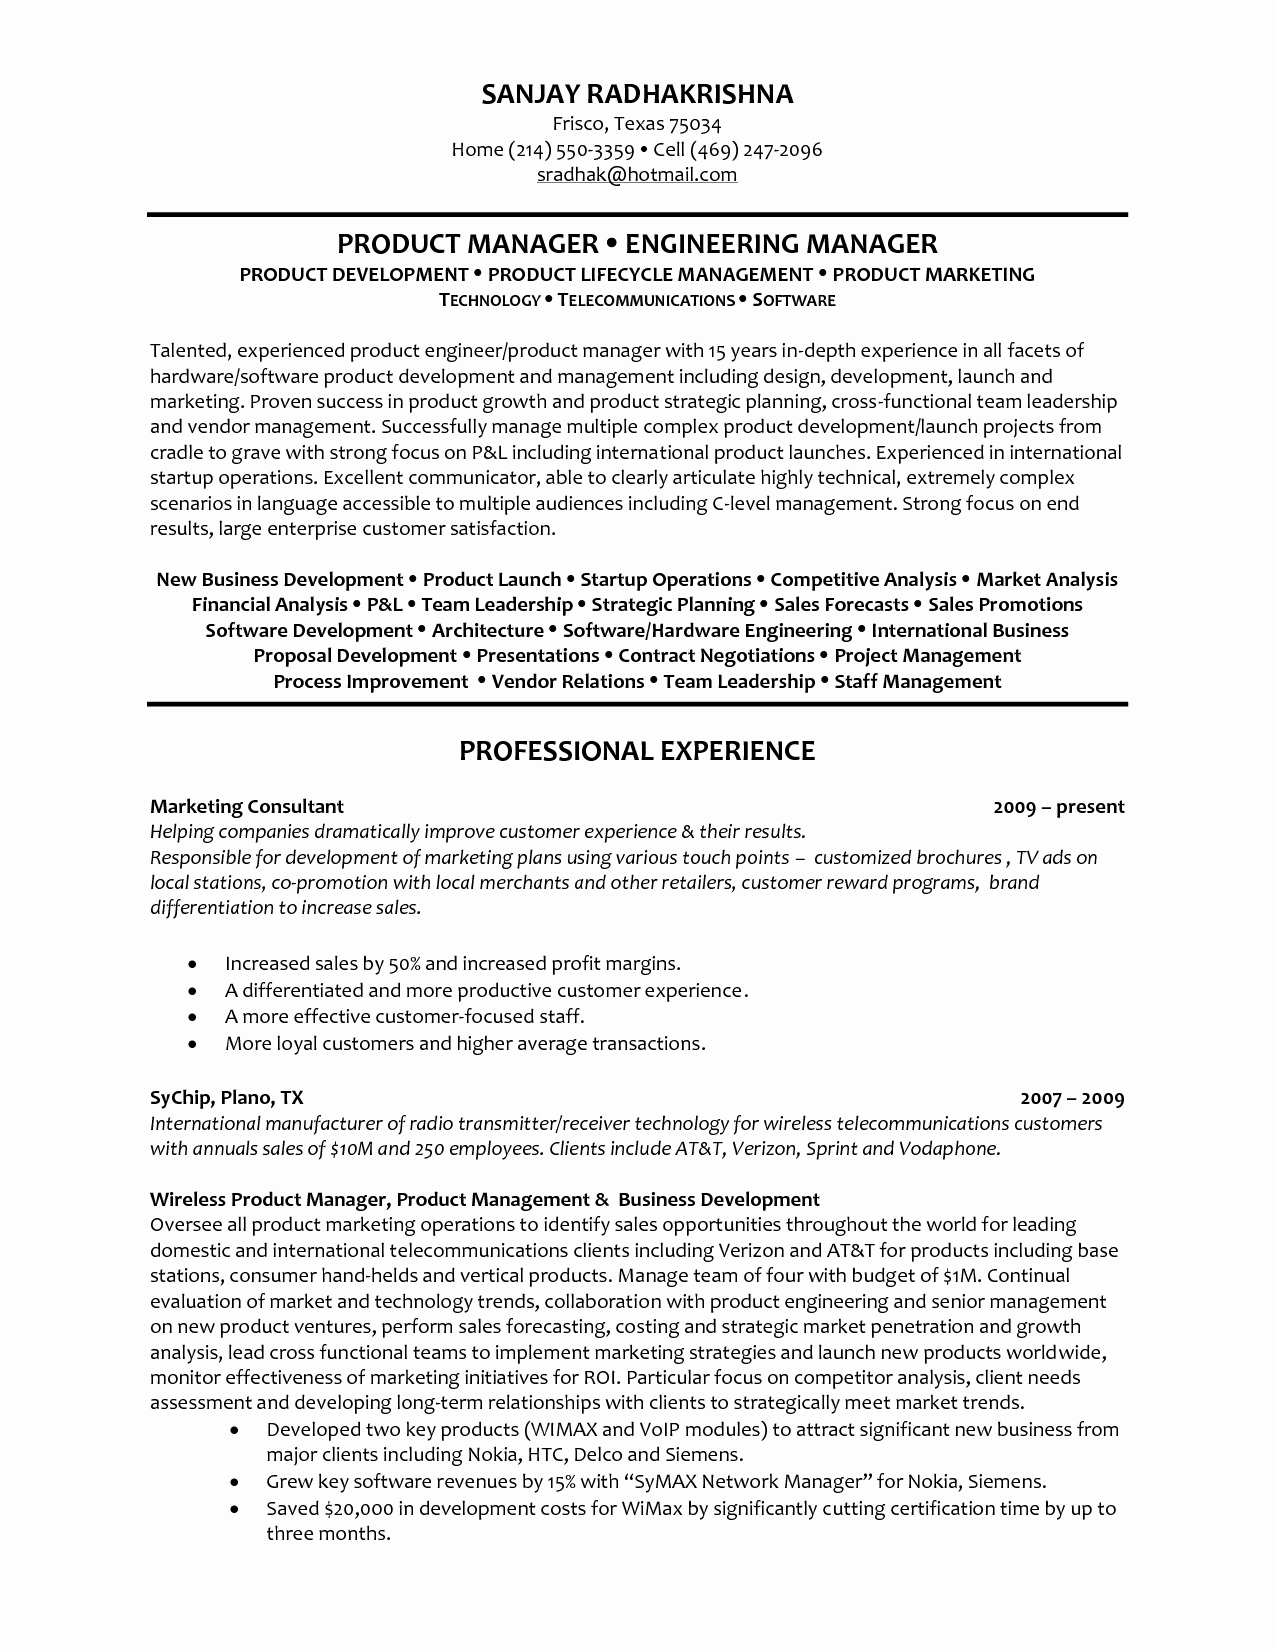 Product Manager Resume Objective Project Skills for